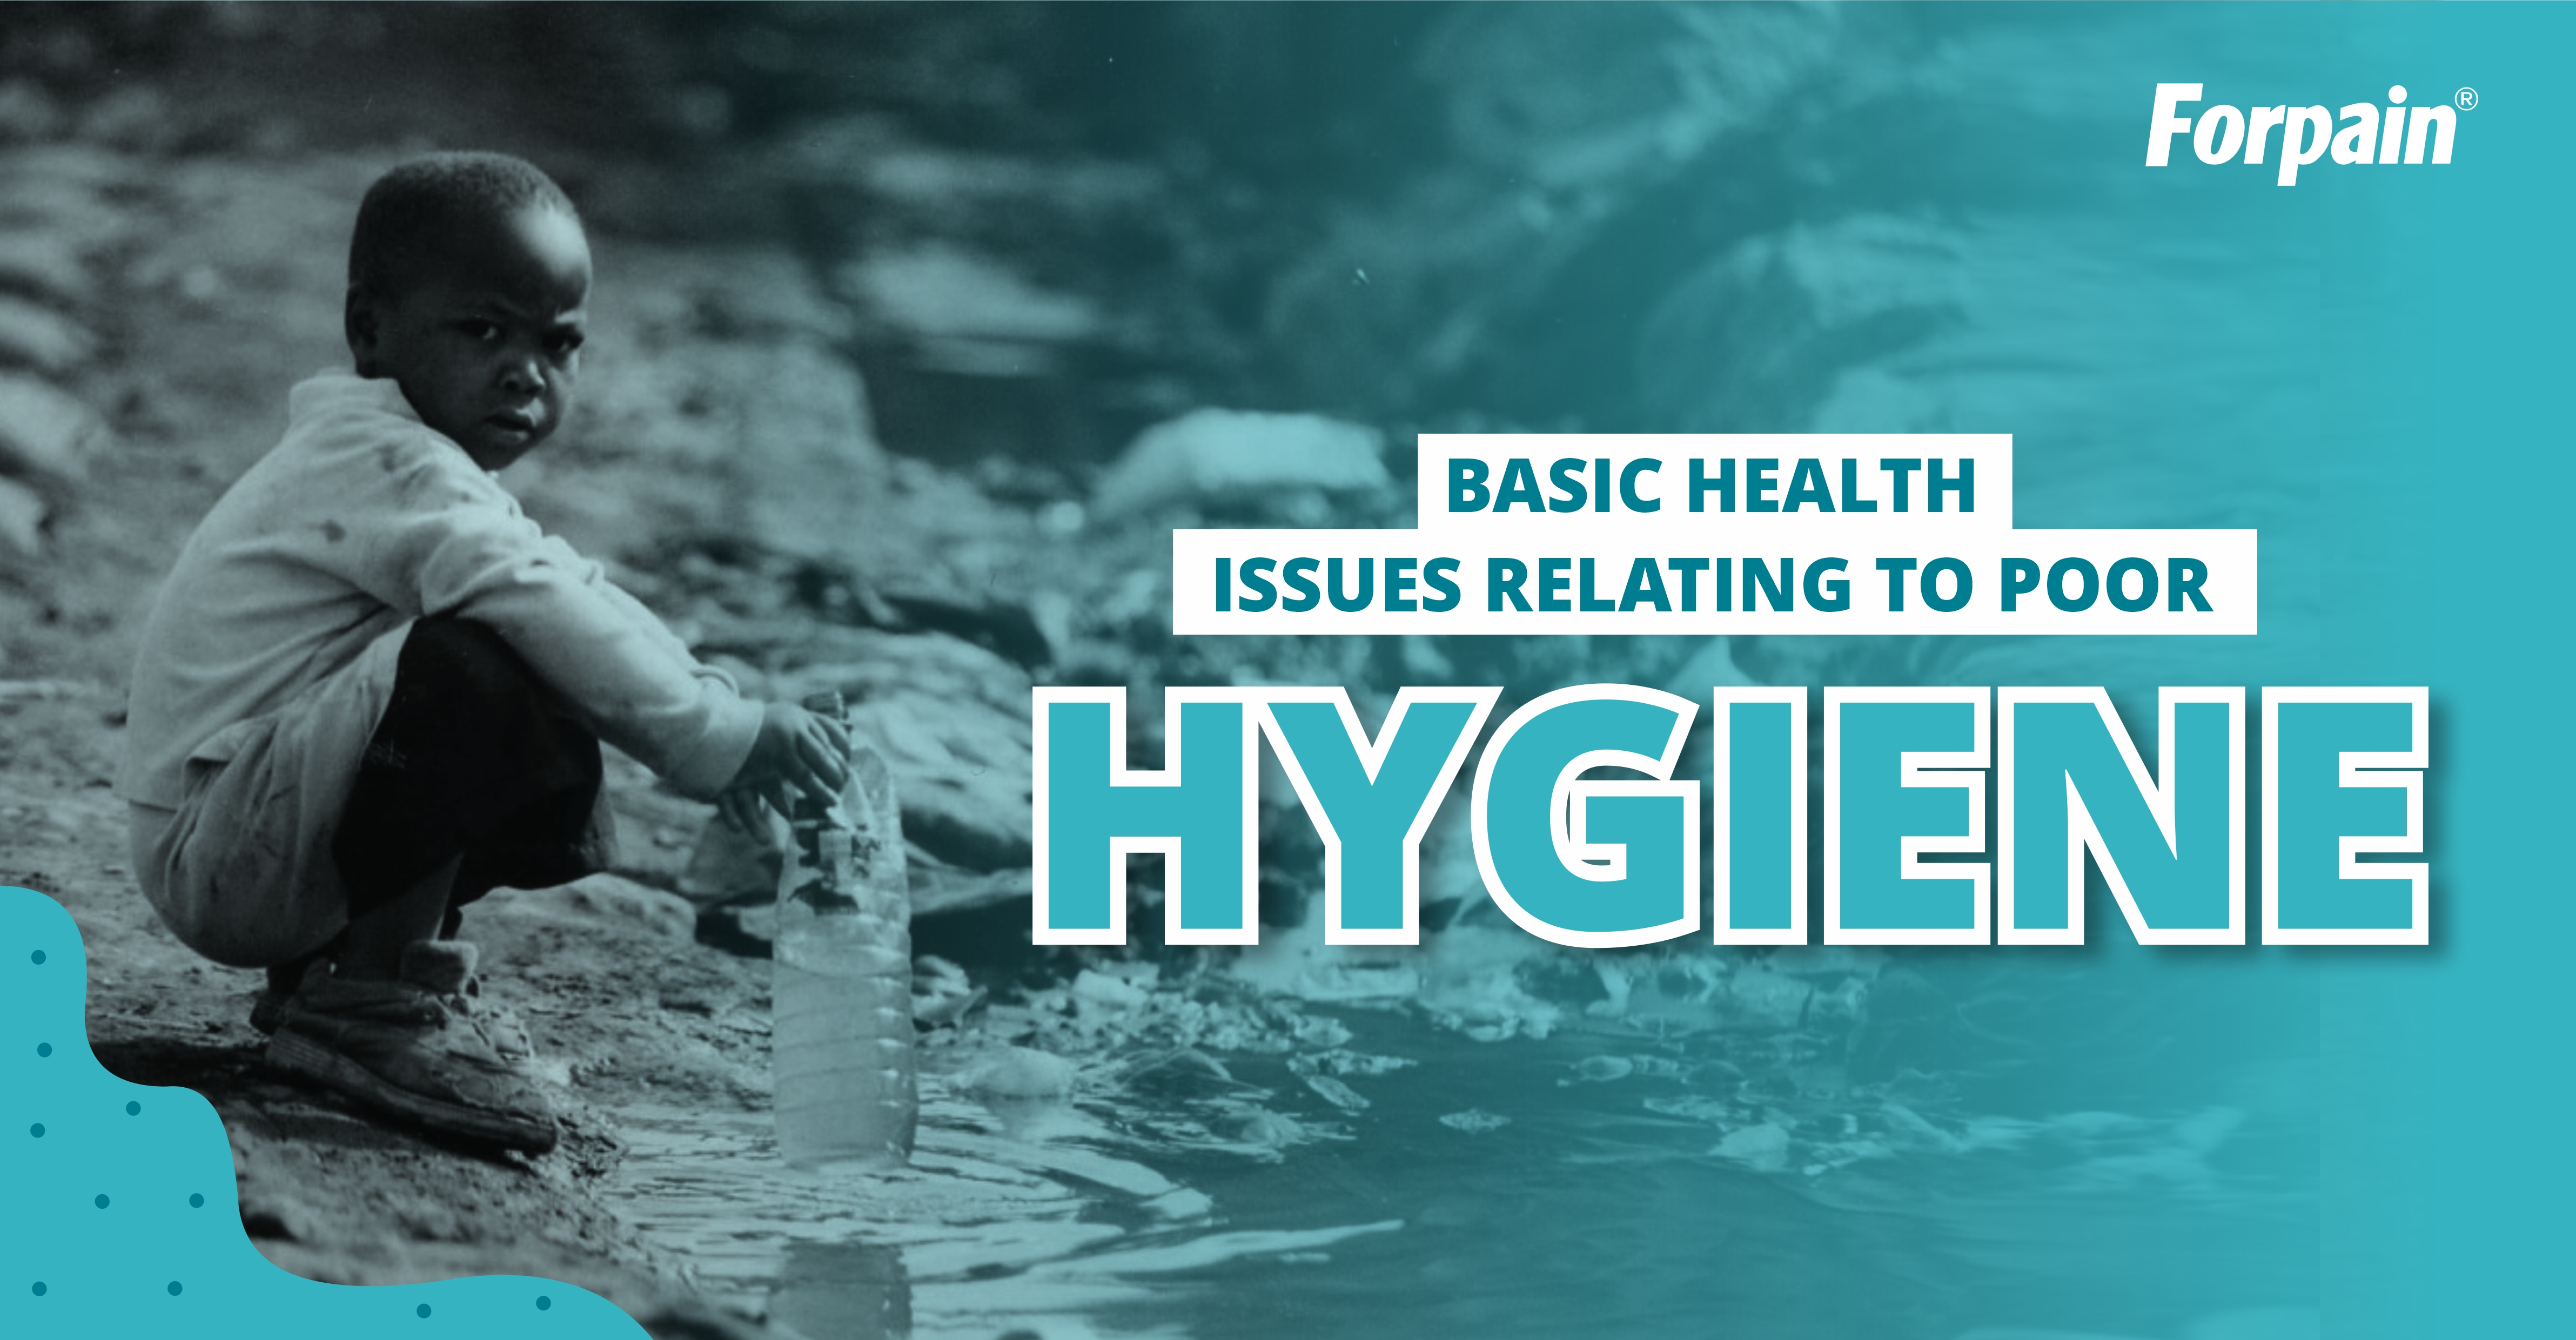 Basic Health Issues Relating To Poor Hygiene